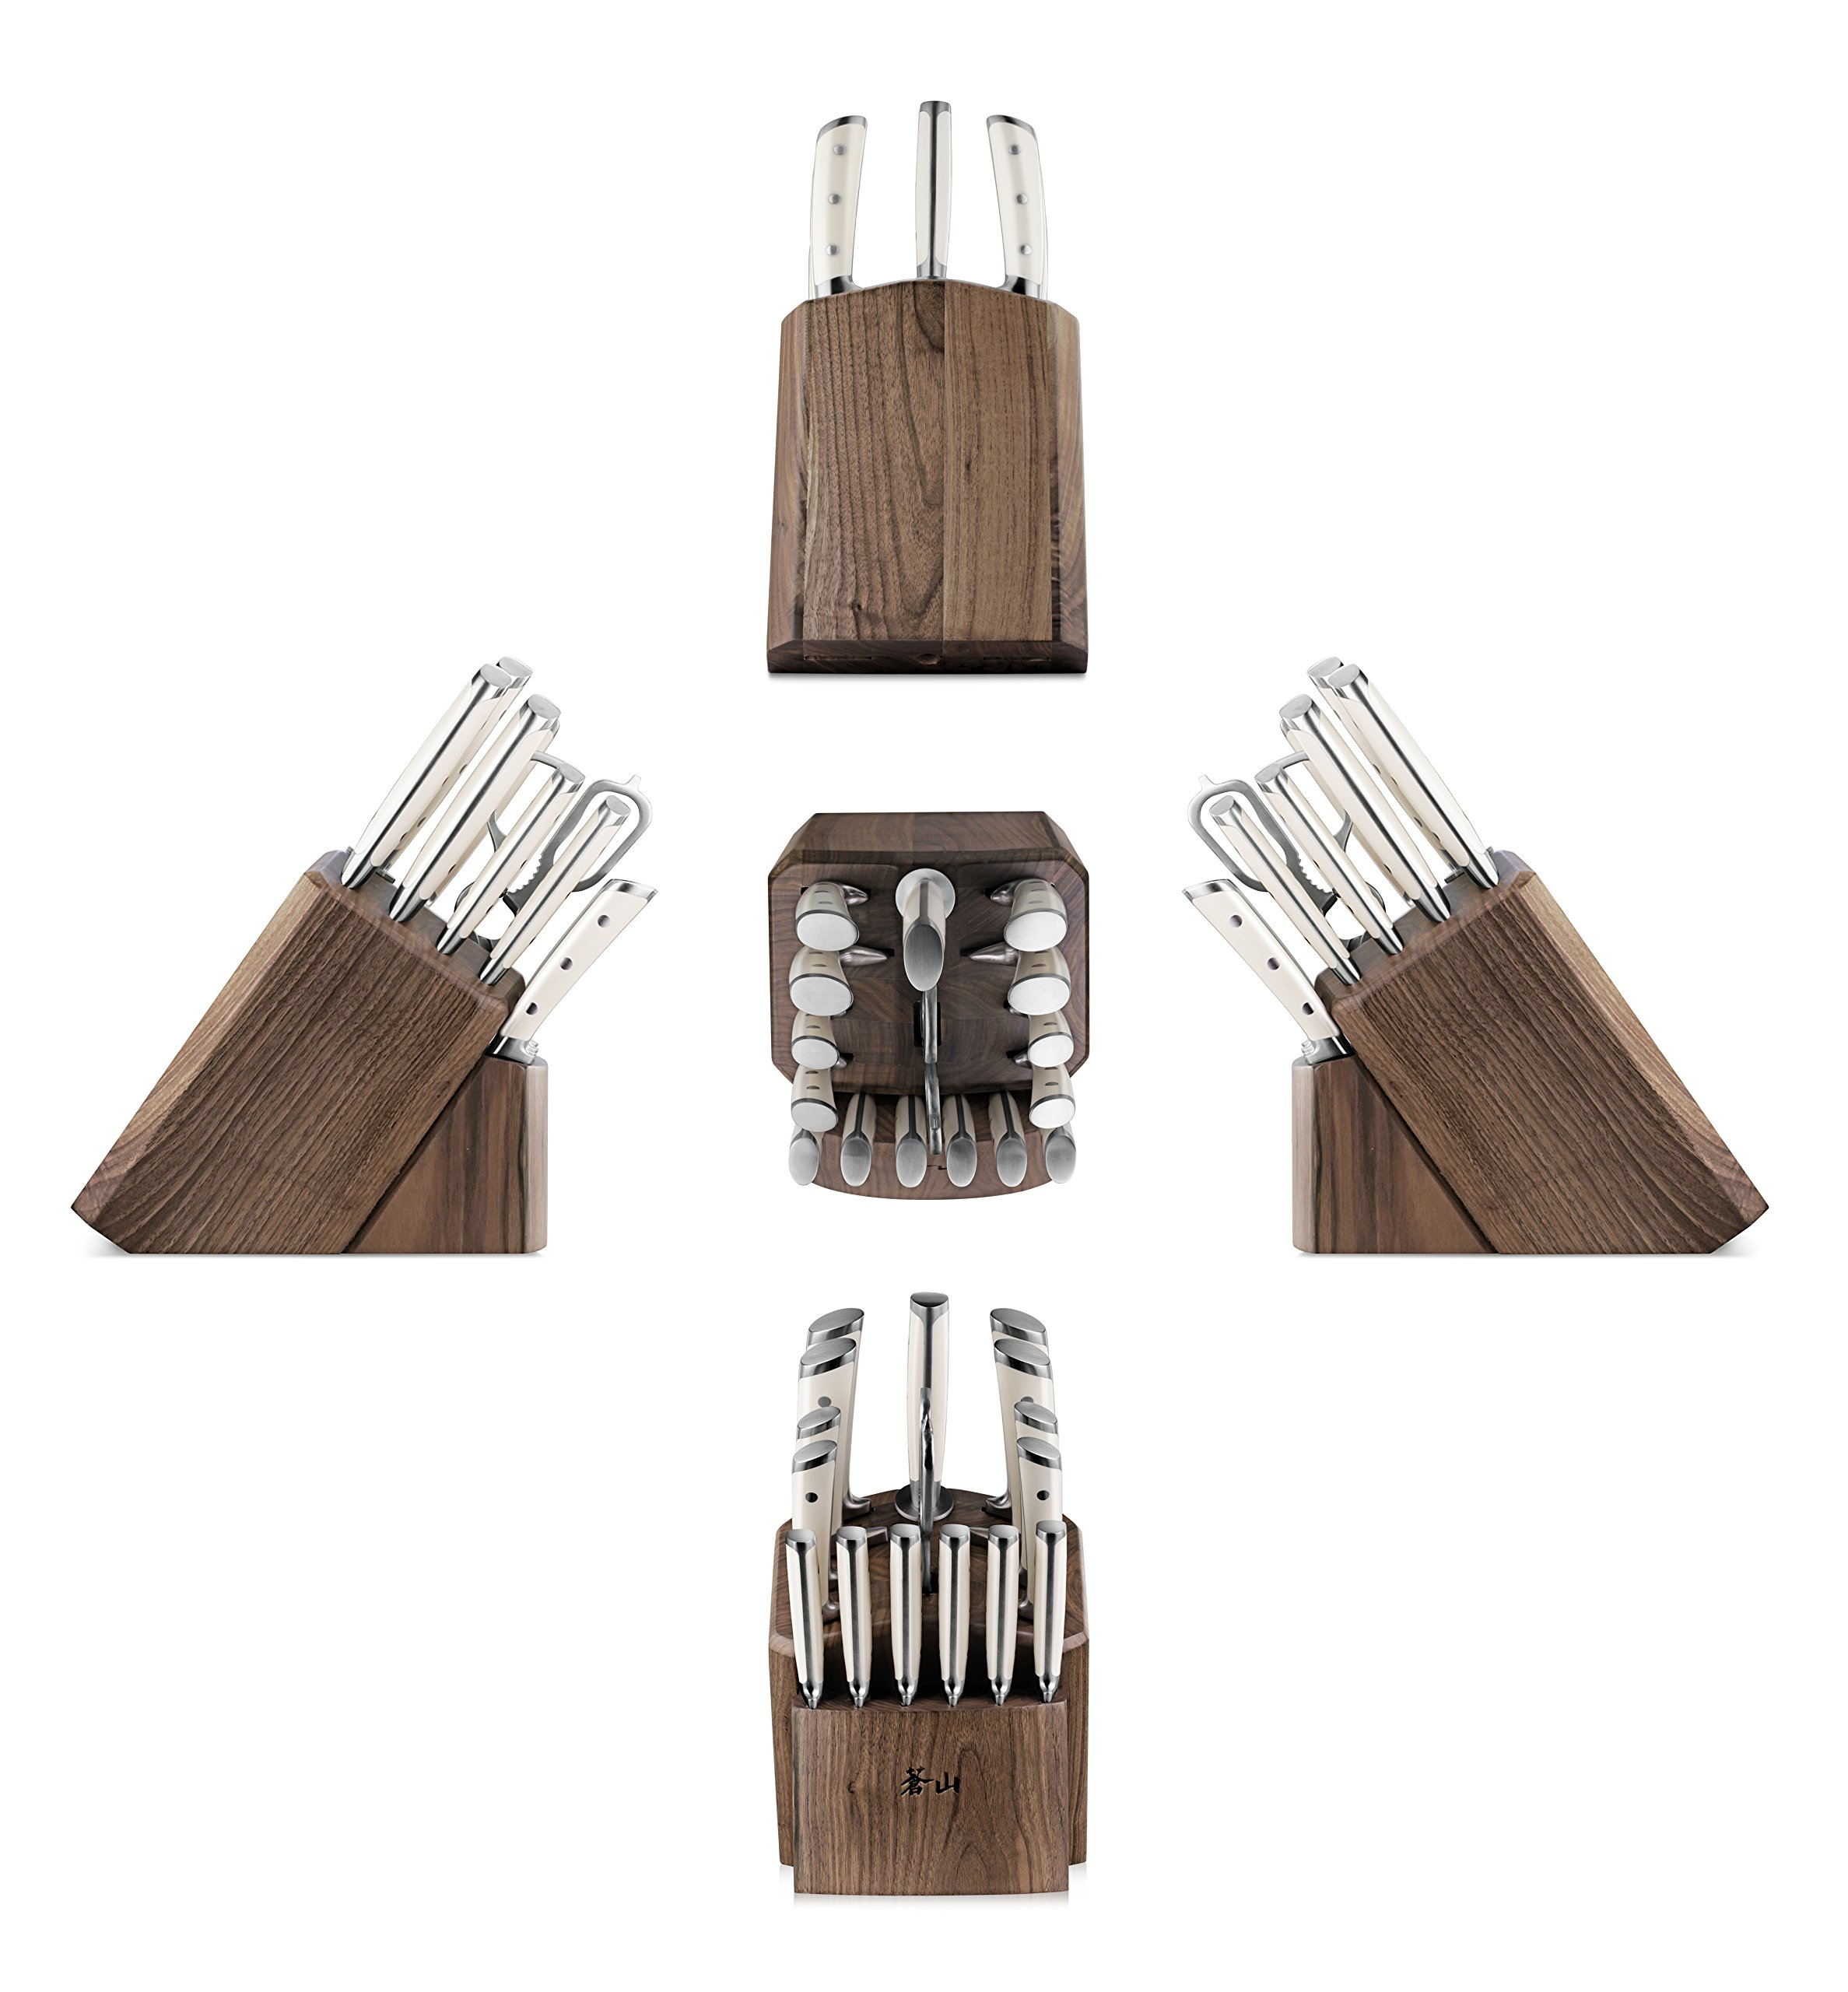 Cangshan S1 Series 1022599 German Steel Forged 17-Piece Knife Block Set , Walnut by Cangshan (Image #3)